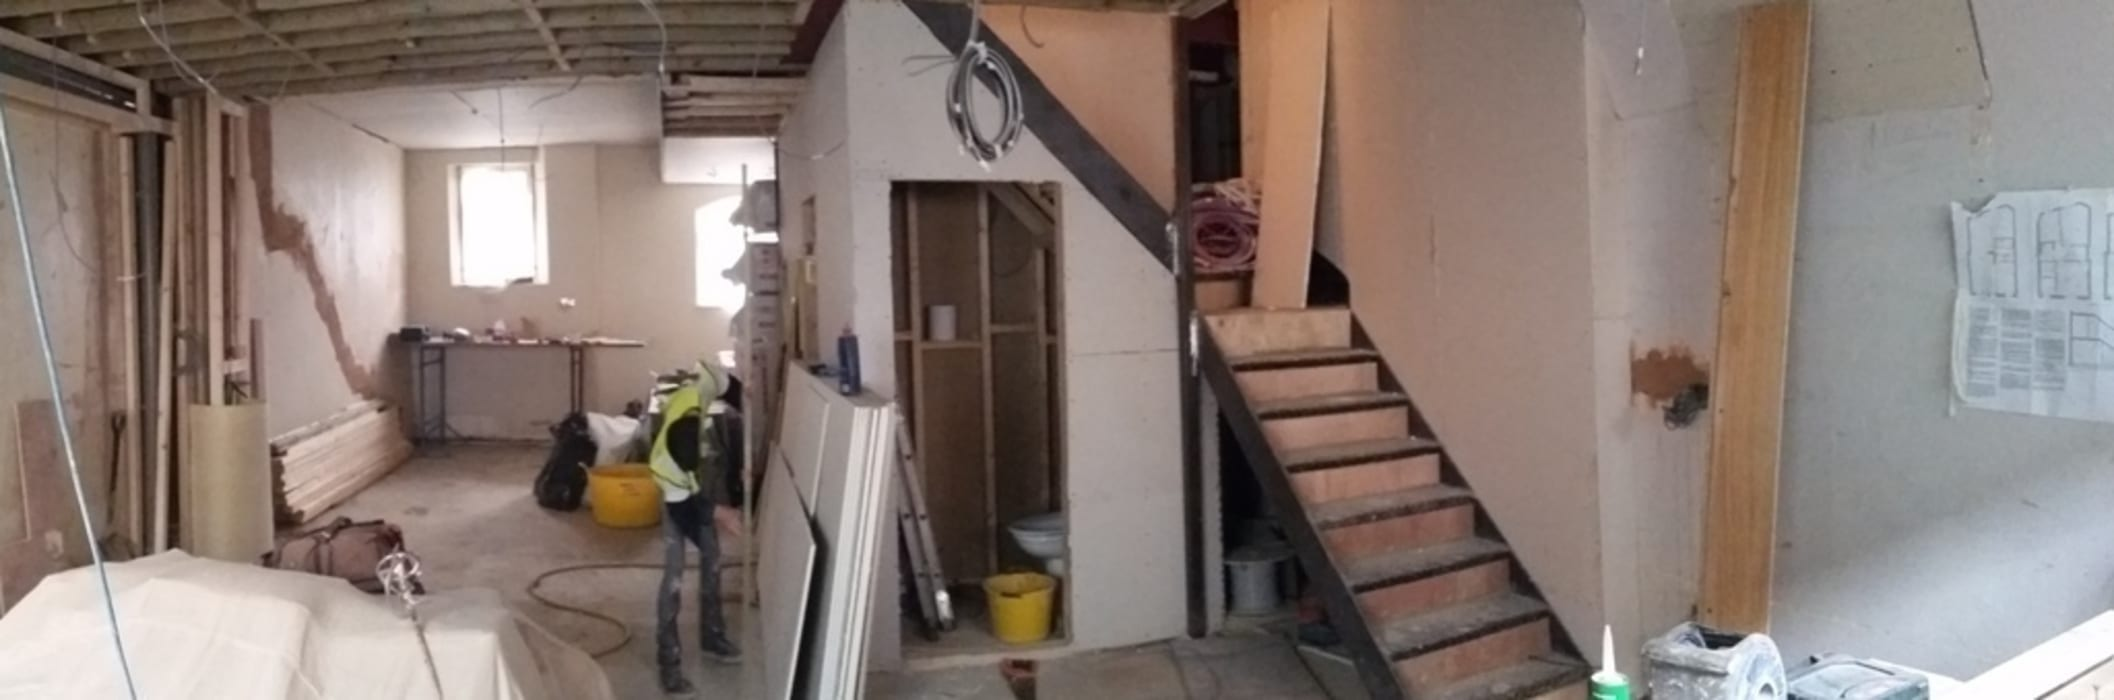 THE STAIRCASE - DURING CONSTRUCTION IS AND REN STUDIOS LTD